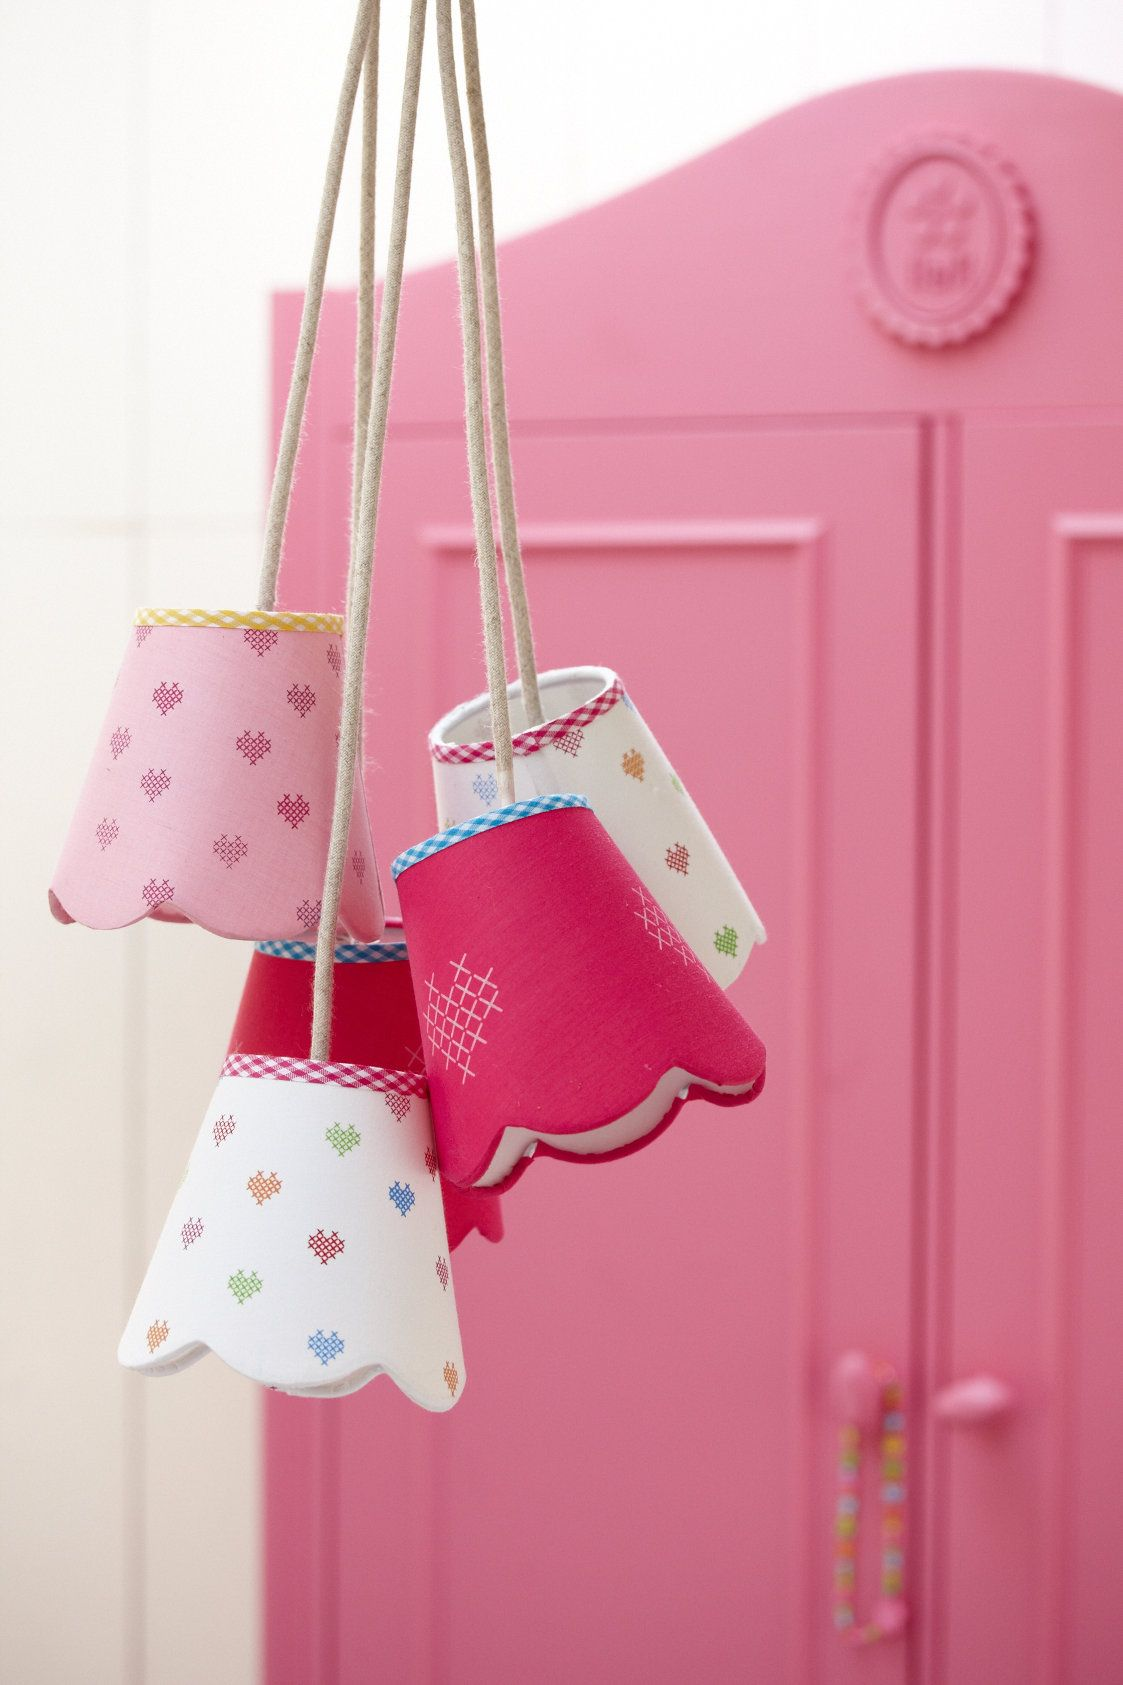 Meisjeskamer Lamp Closet And Lamp Lief Lifestyle Kinderkamer Pinterest